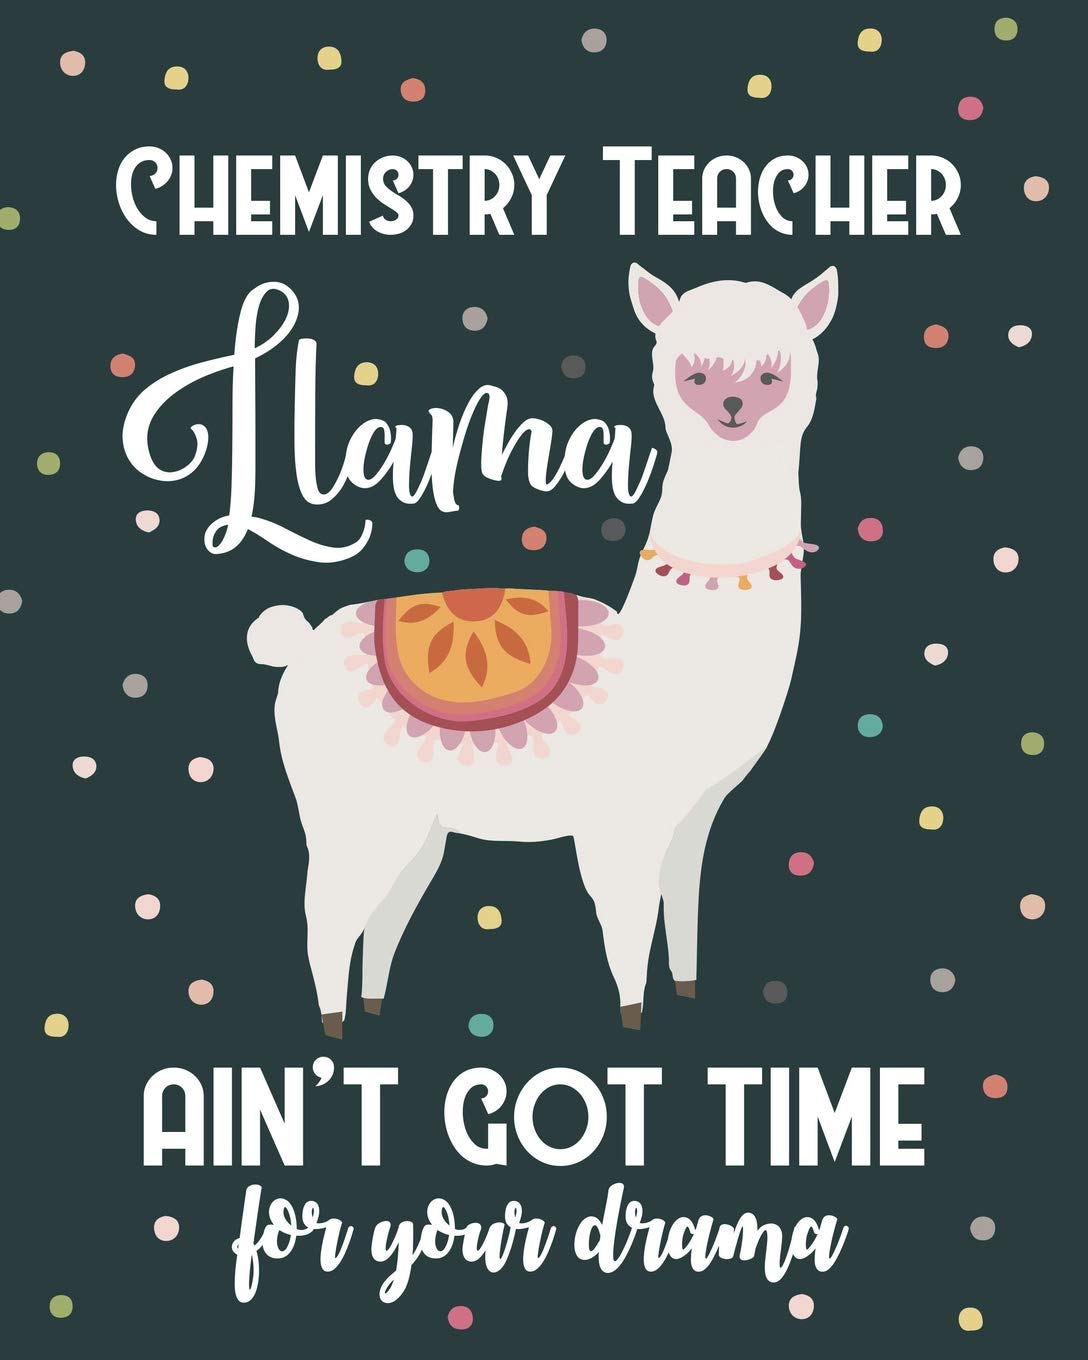 His Teachers Pet and Its Chemistry